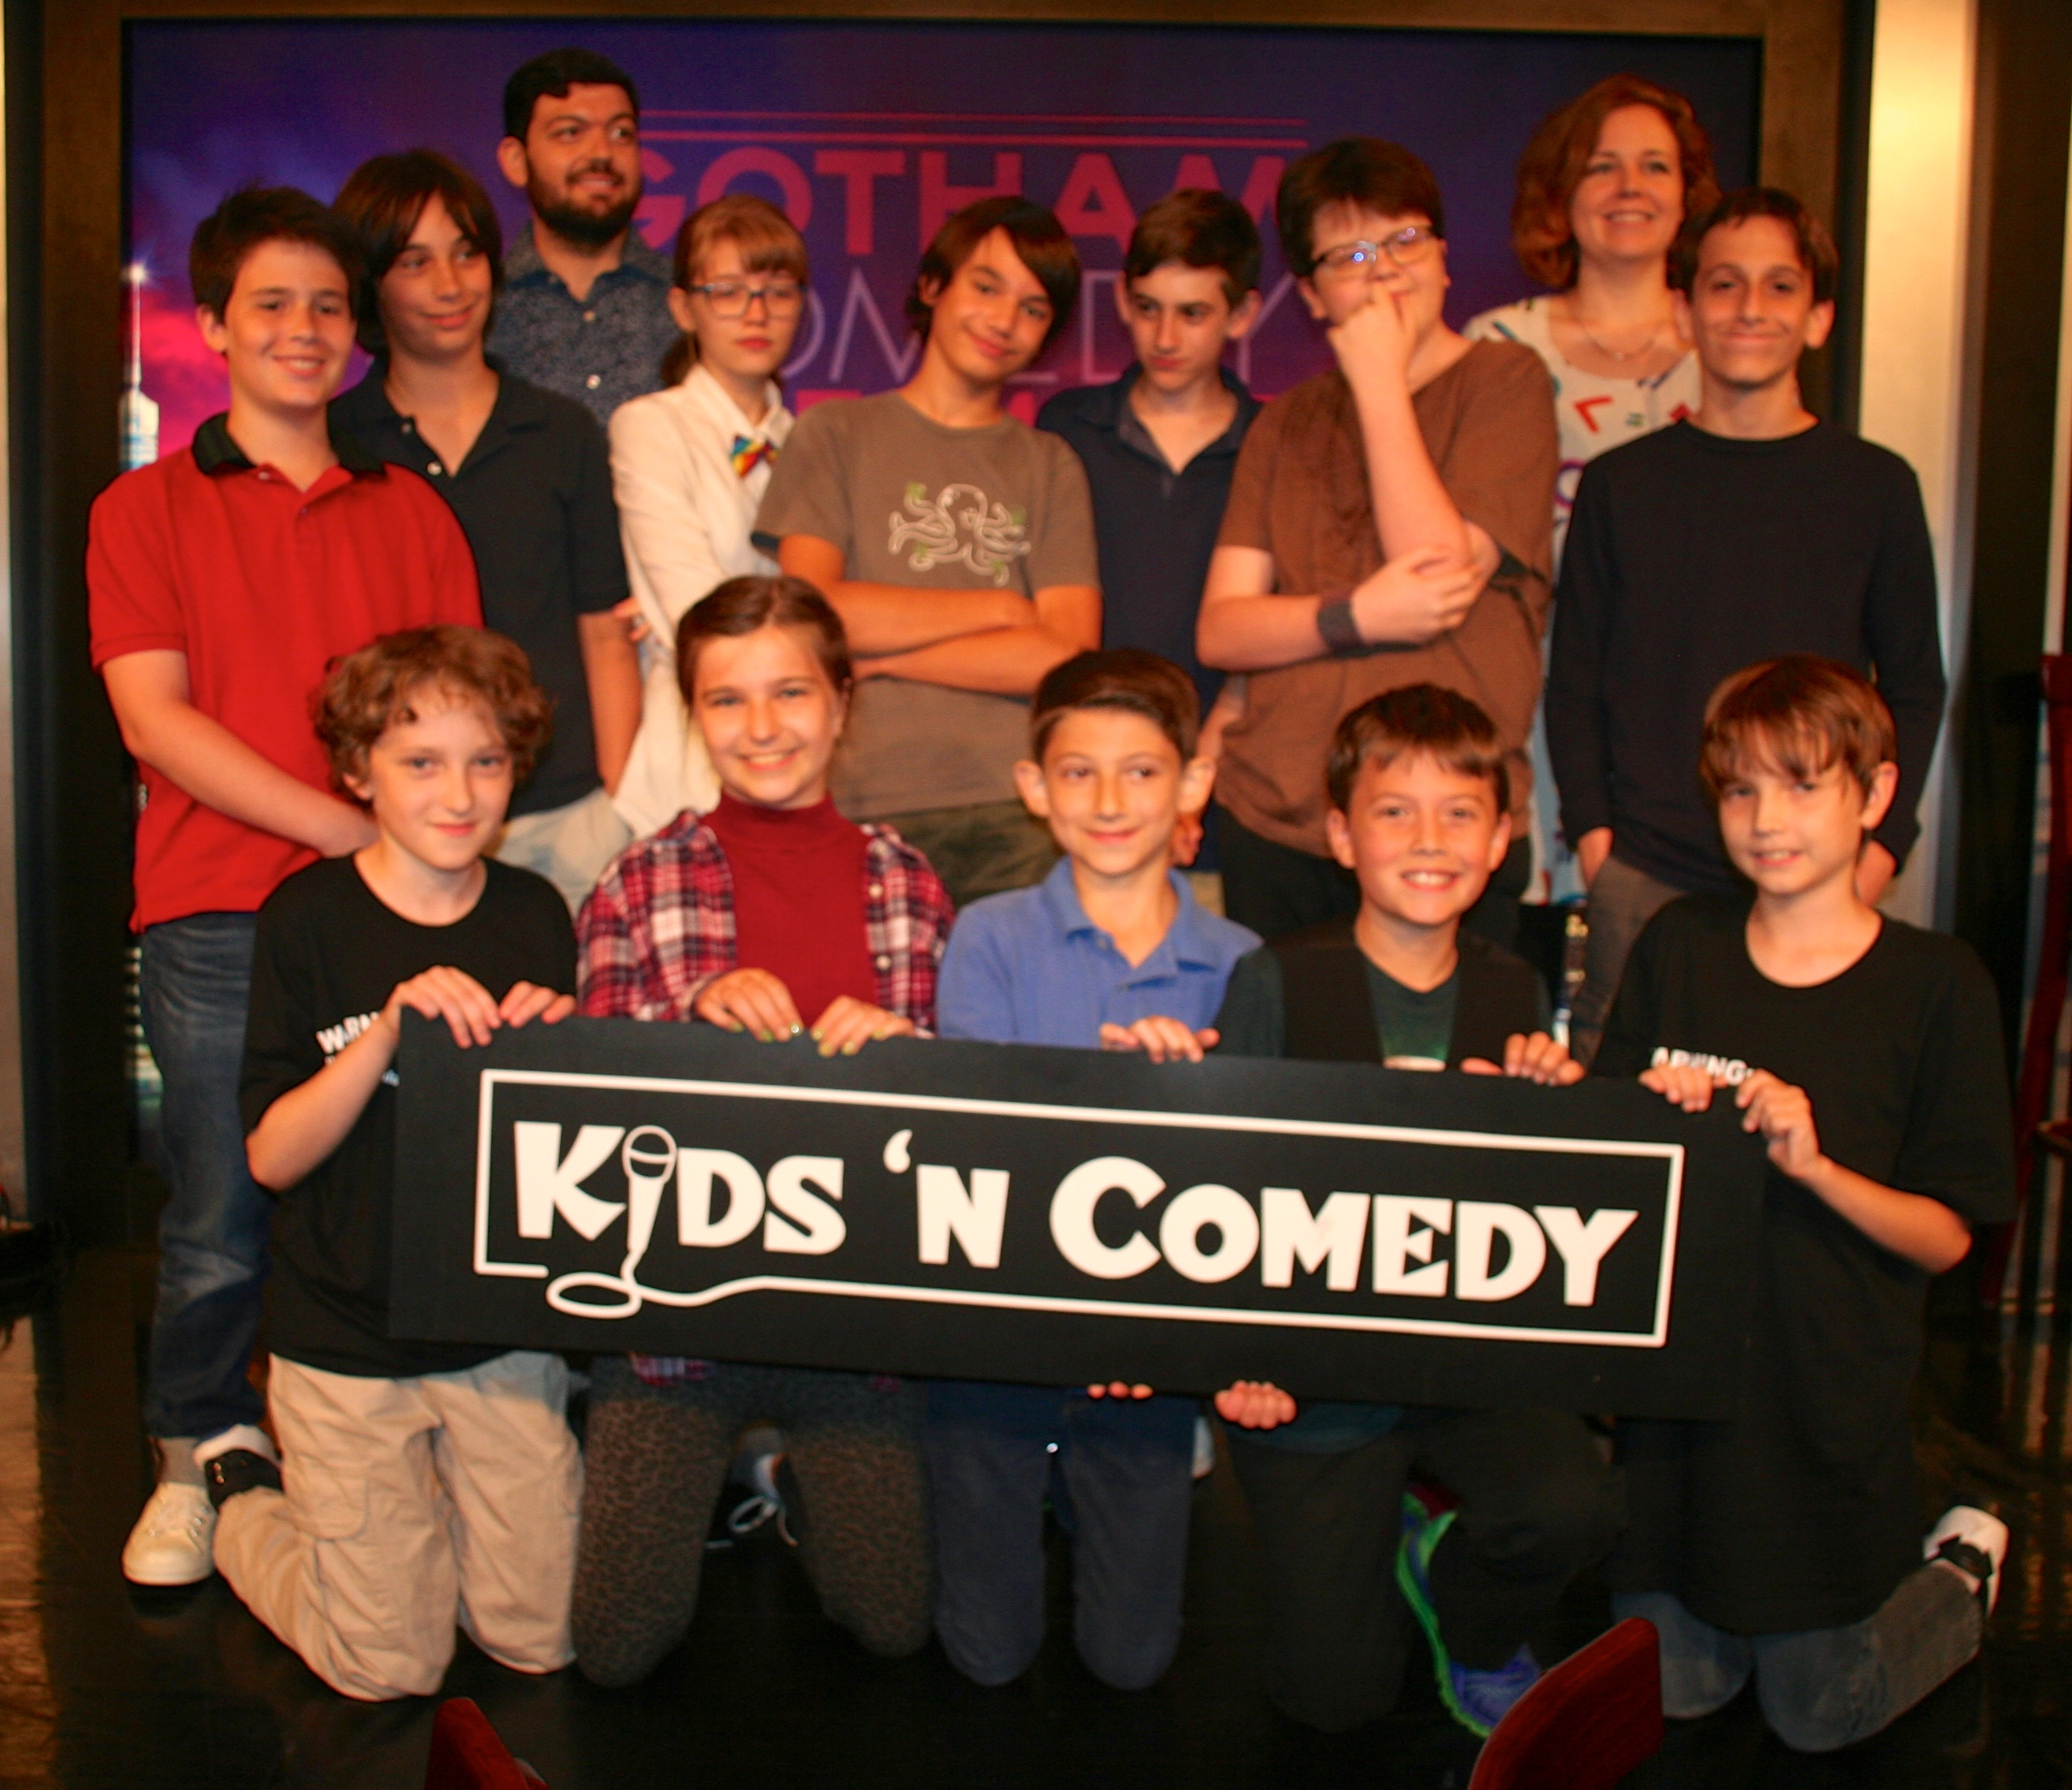 Summer Program - Theatre Arts | Camp Kids 'n Comedy